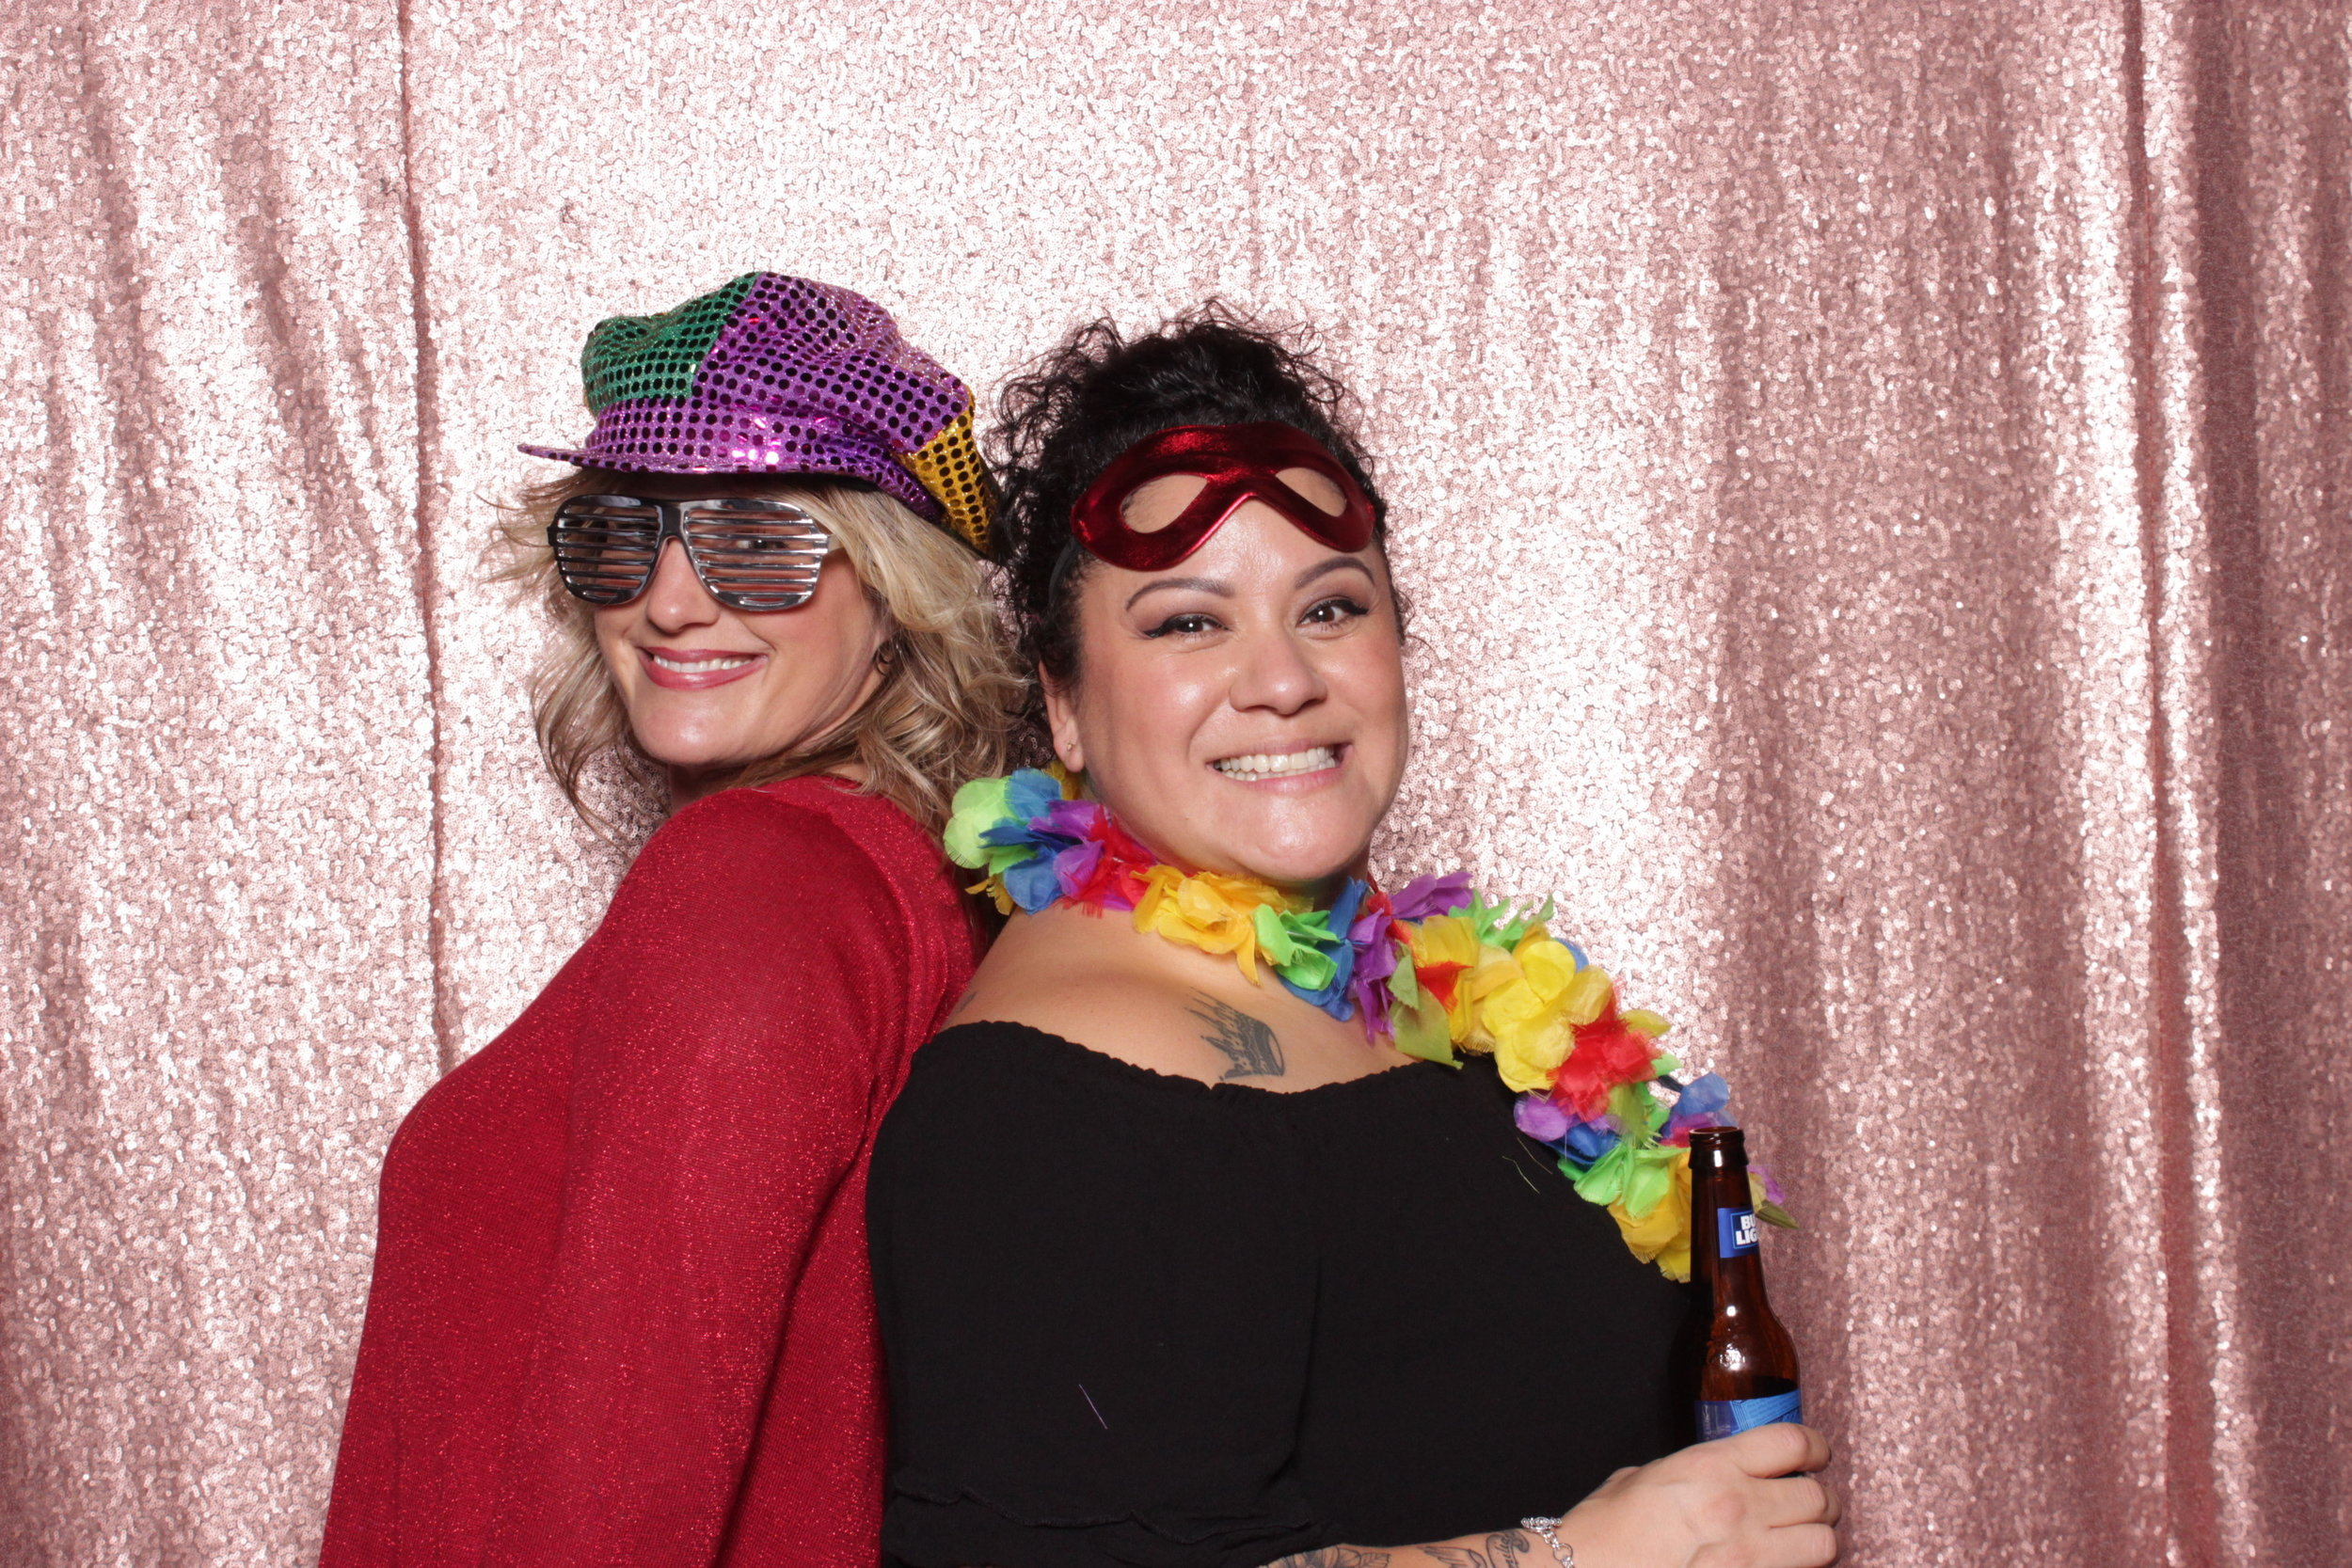 Chico-photo-booth-rental-fun-party